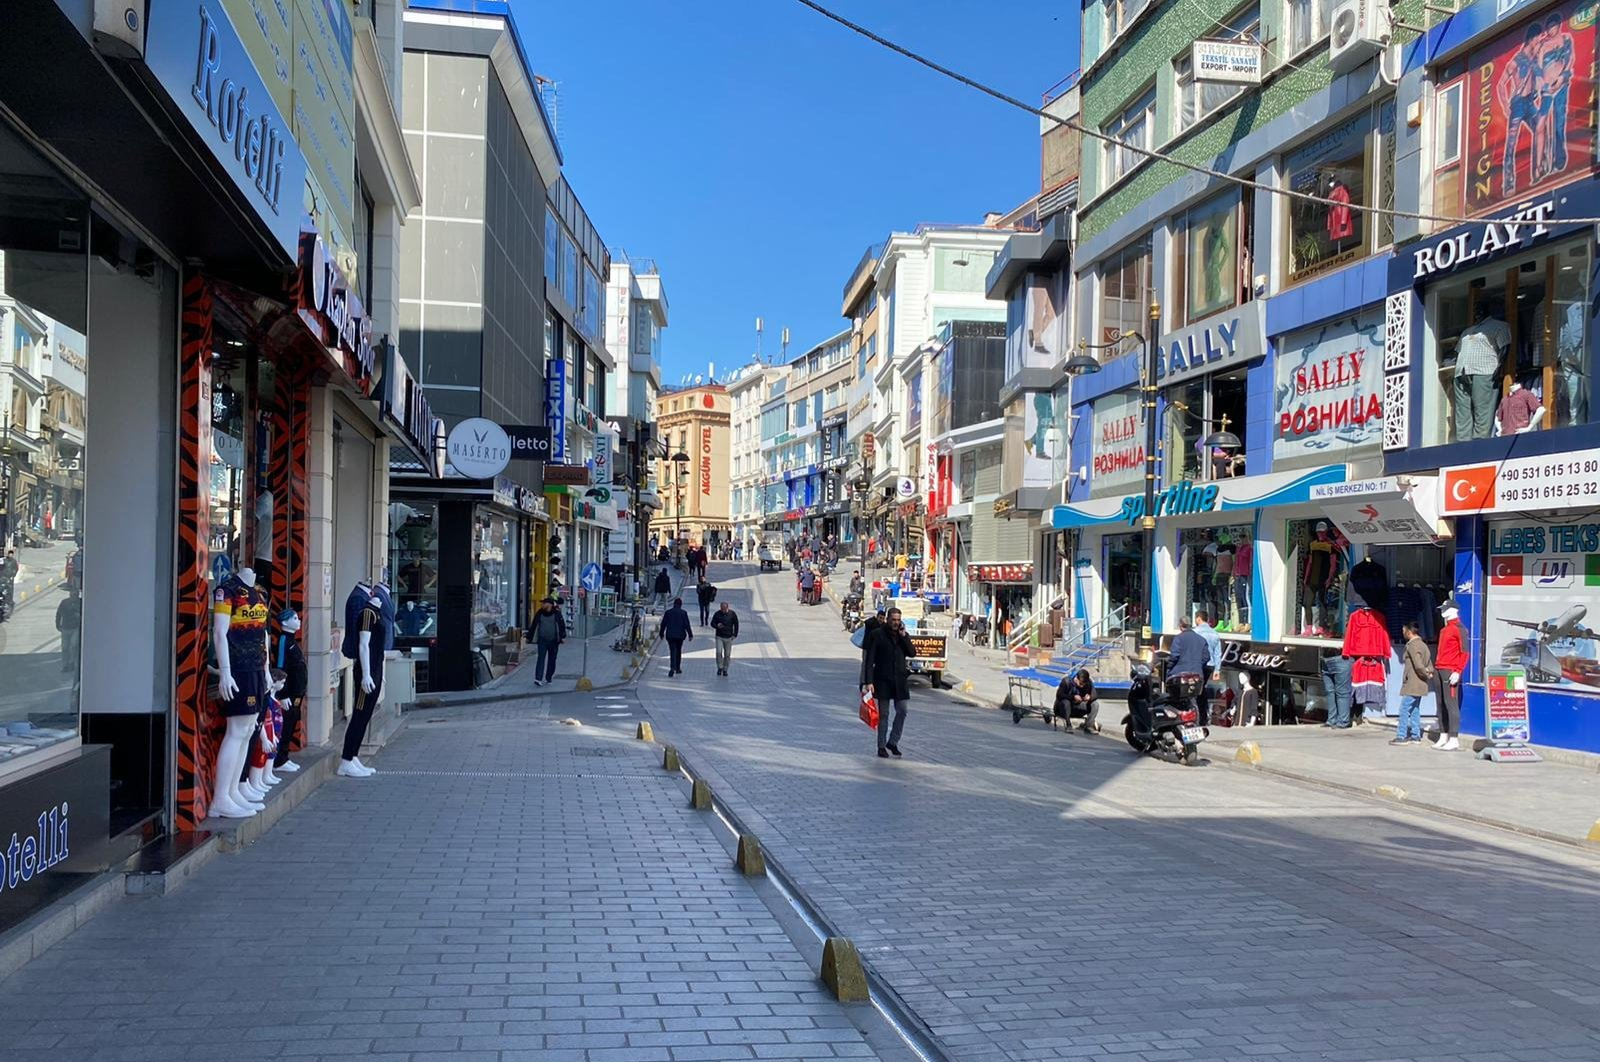 People are seen walking in Laleli, a quarter of Istanbul's Fatih district, March 17, 2020. (DS Photo)